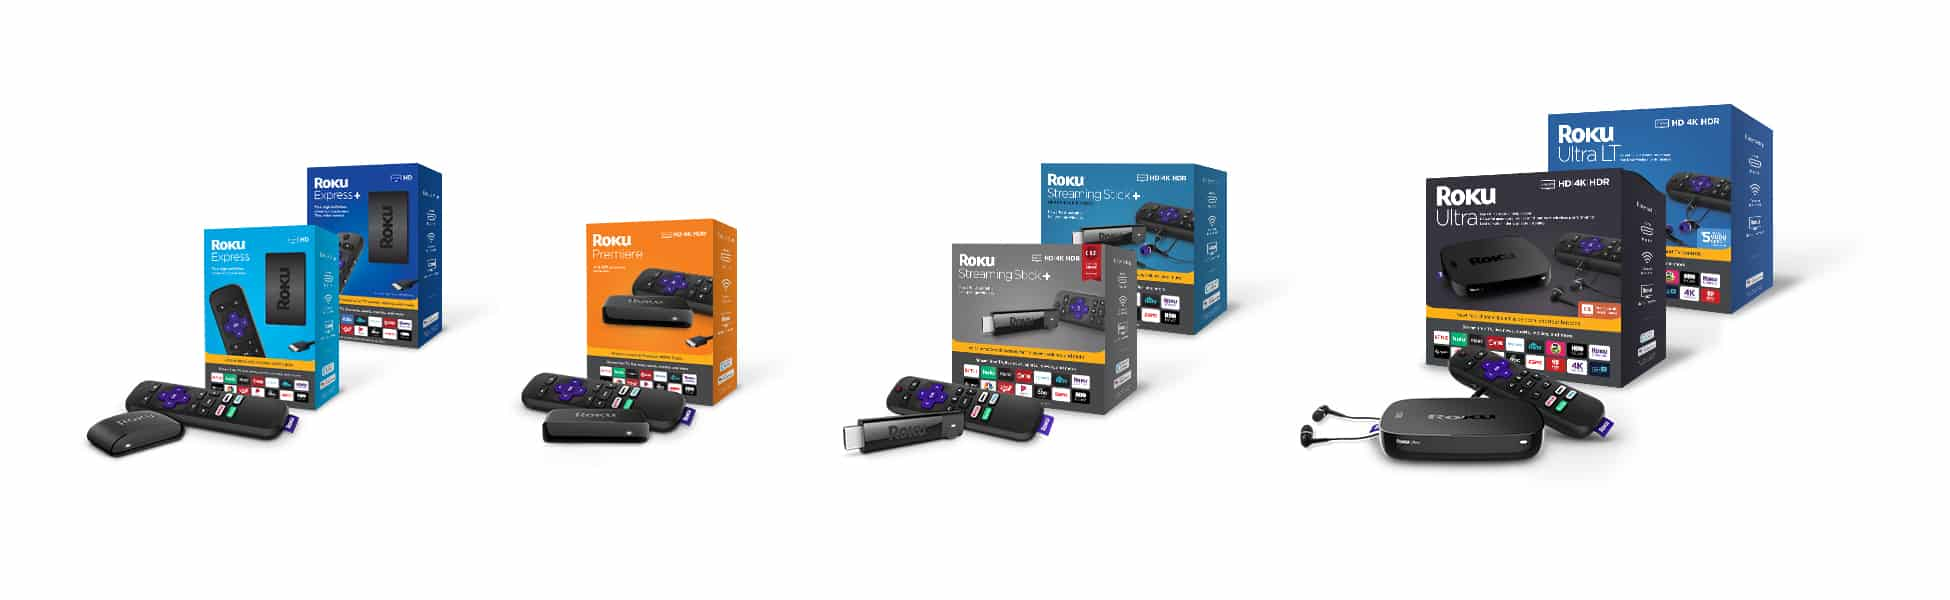 Roku Player Line Up with Product